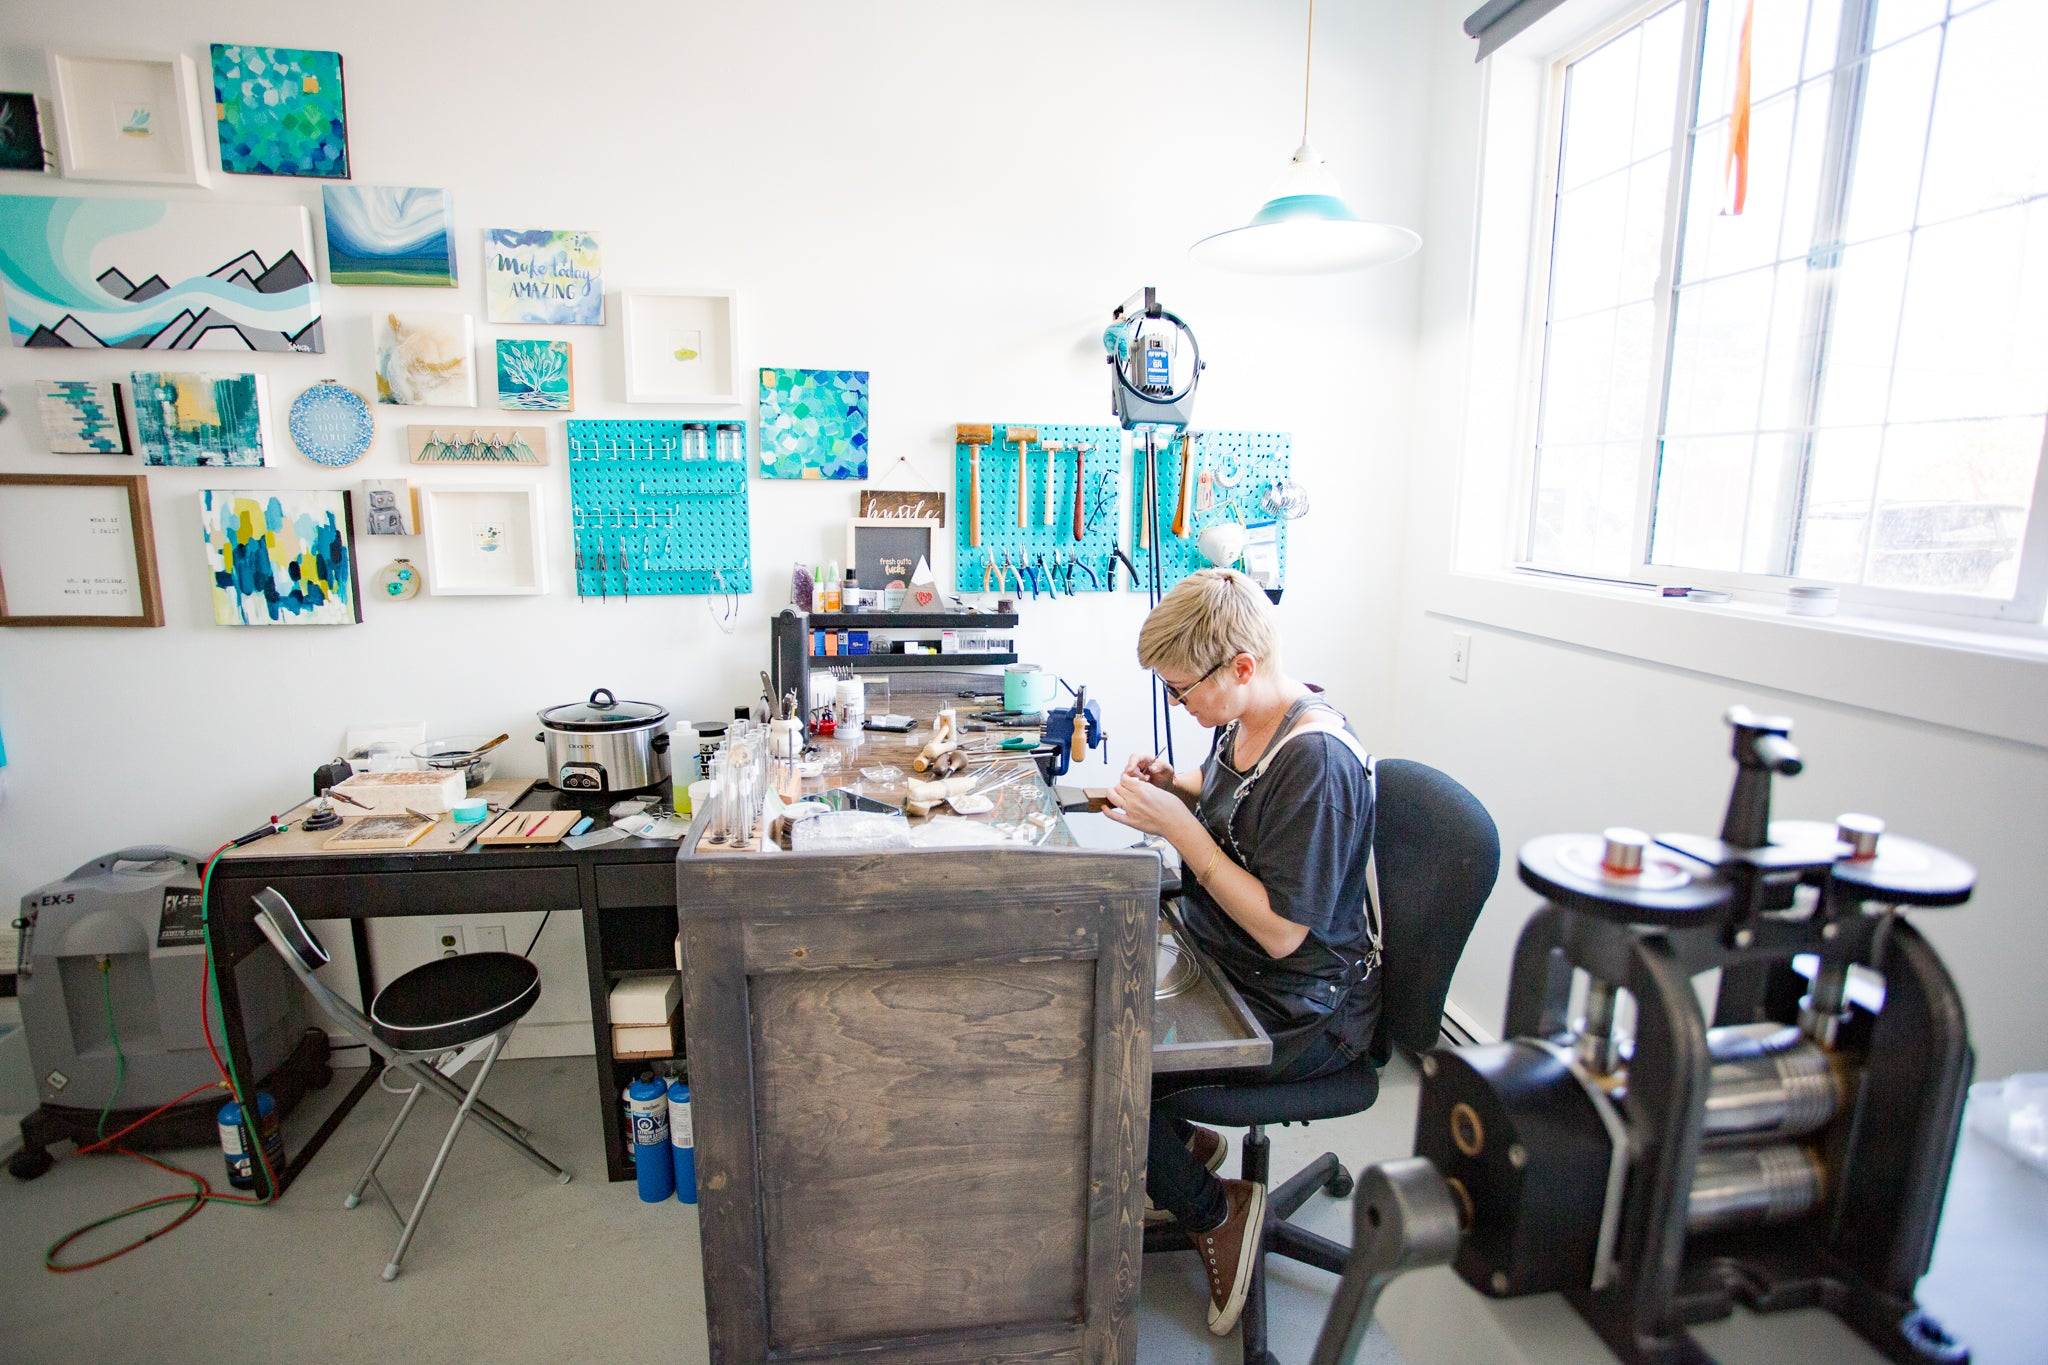 Rachael working in her studio